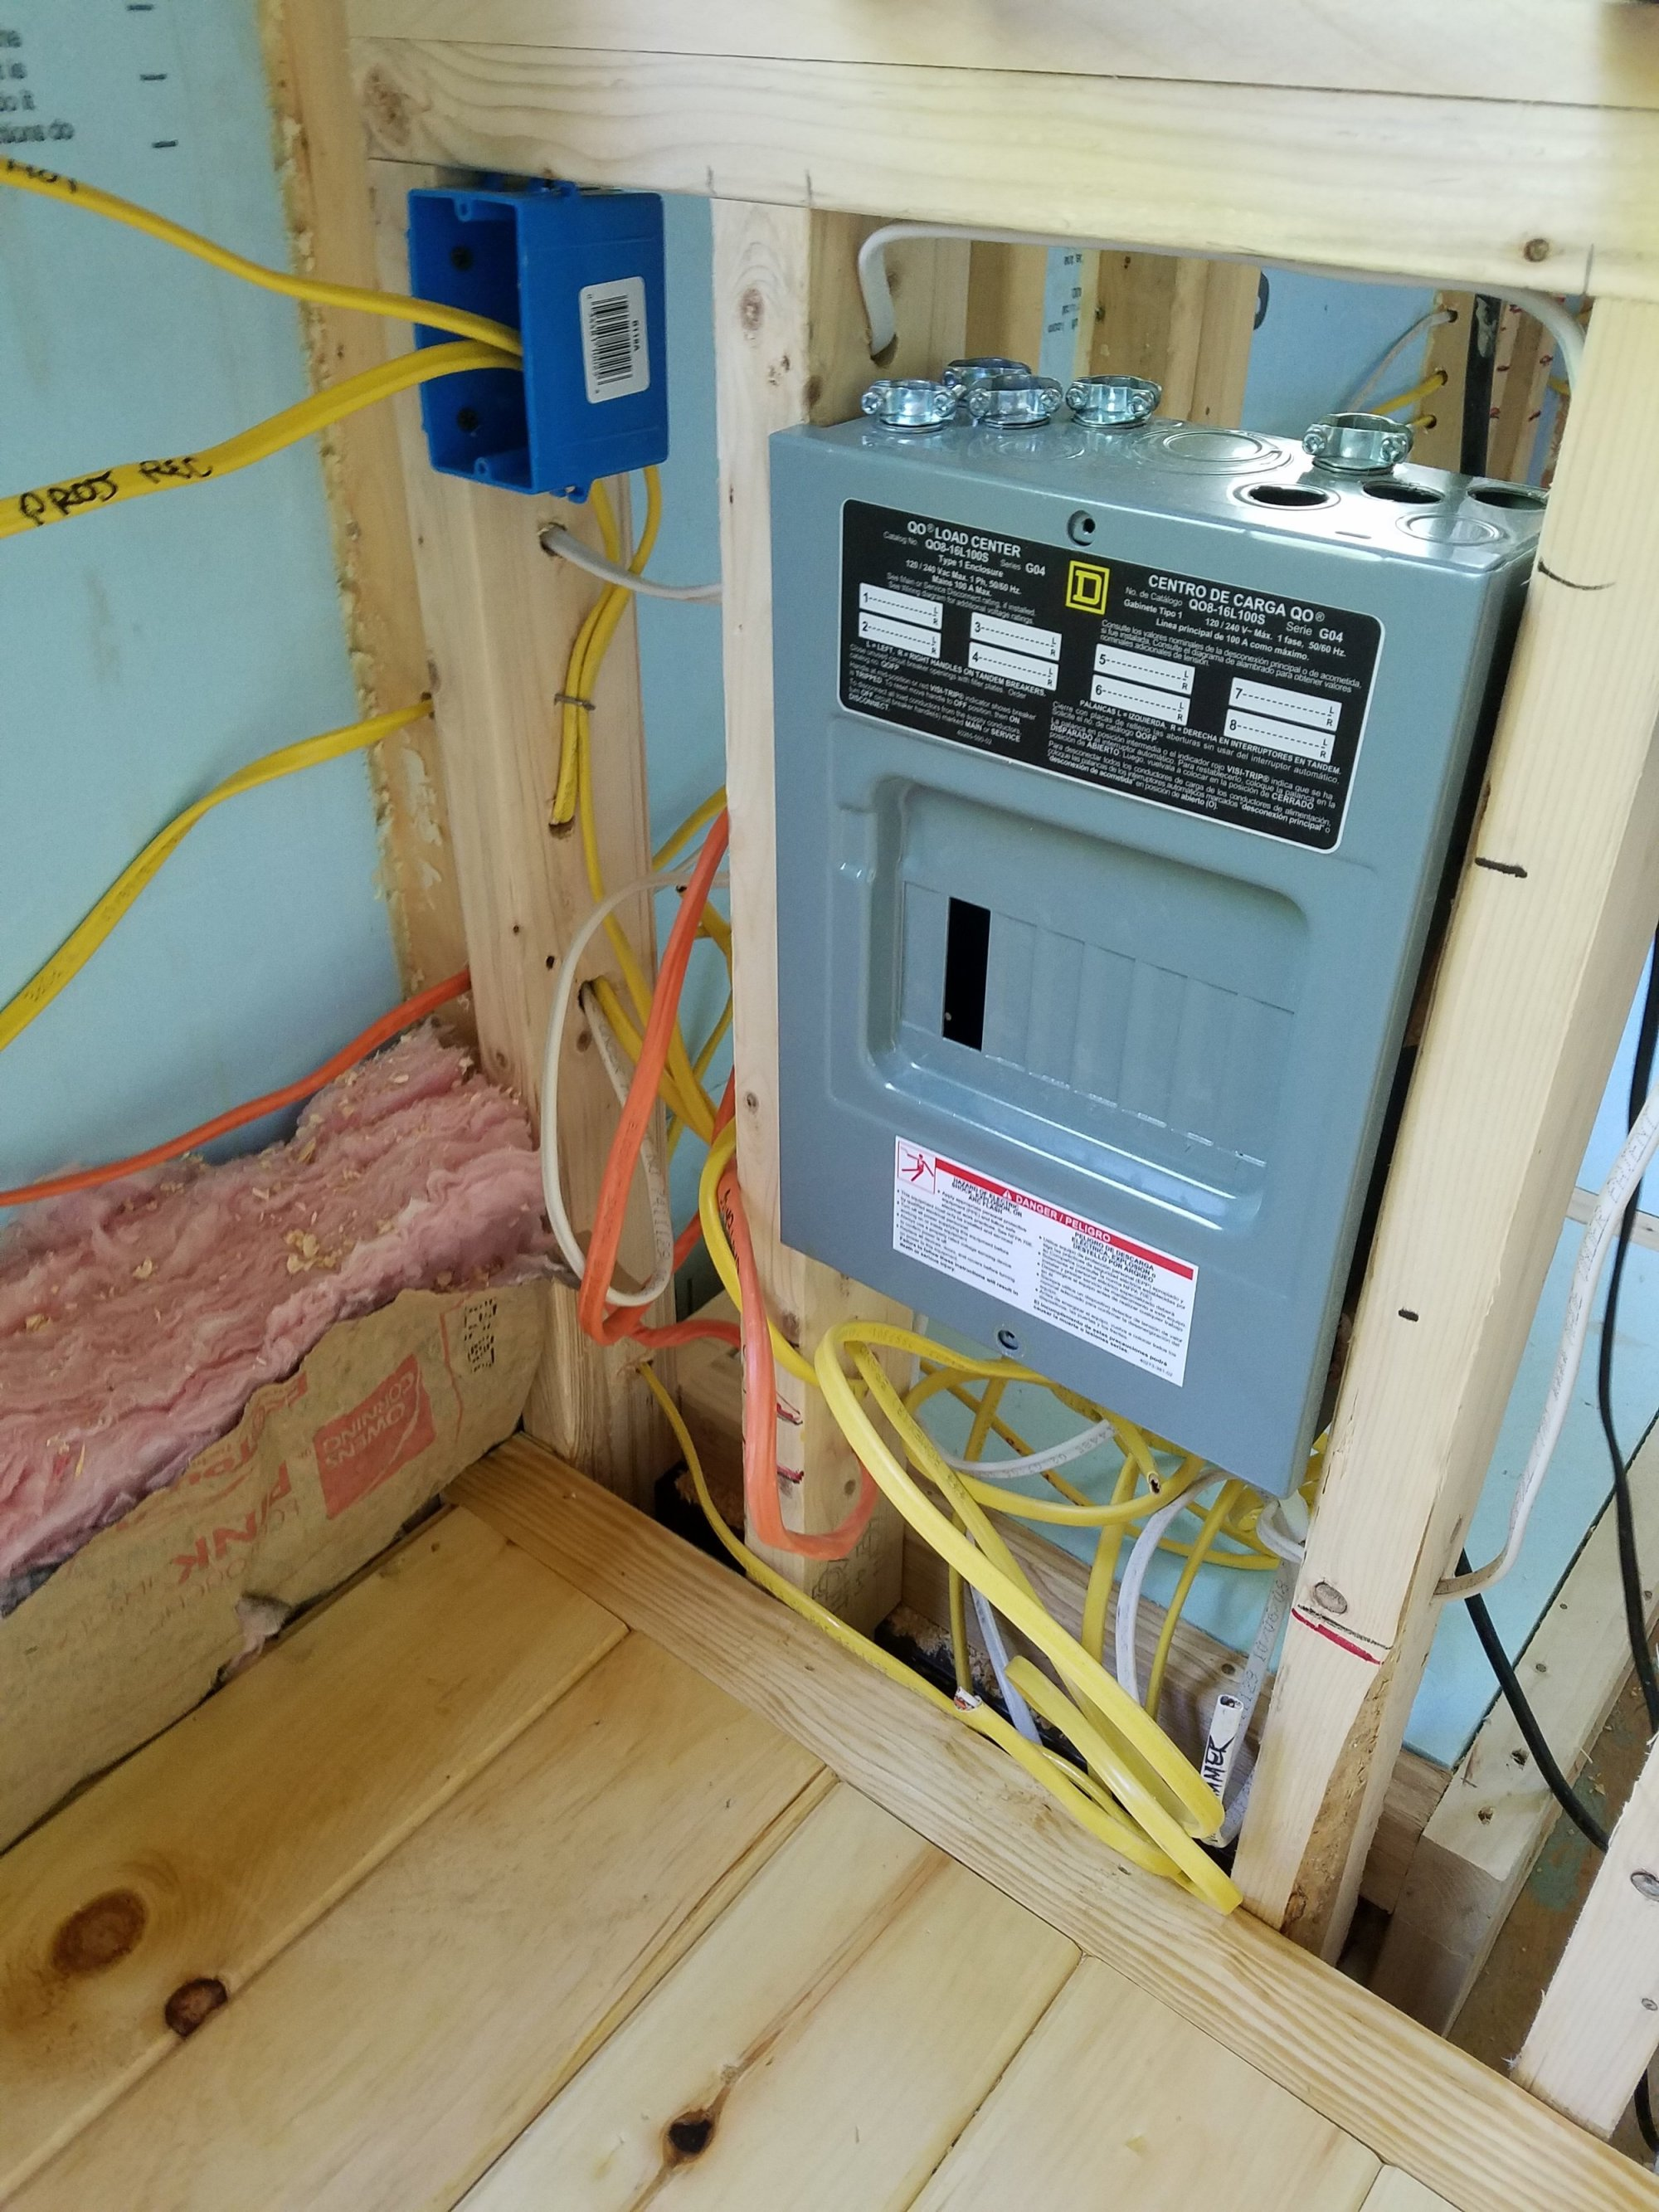 hight resolution of electricity panel to everything in the house will sit by the kitchen cabinets